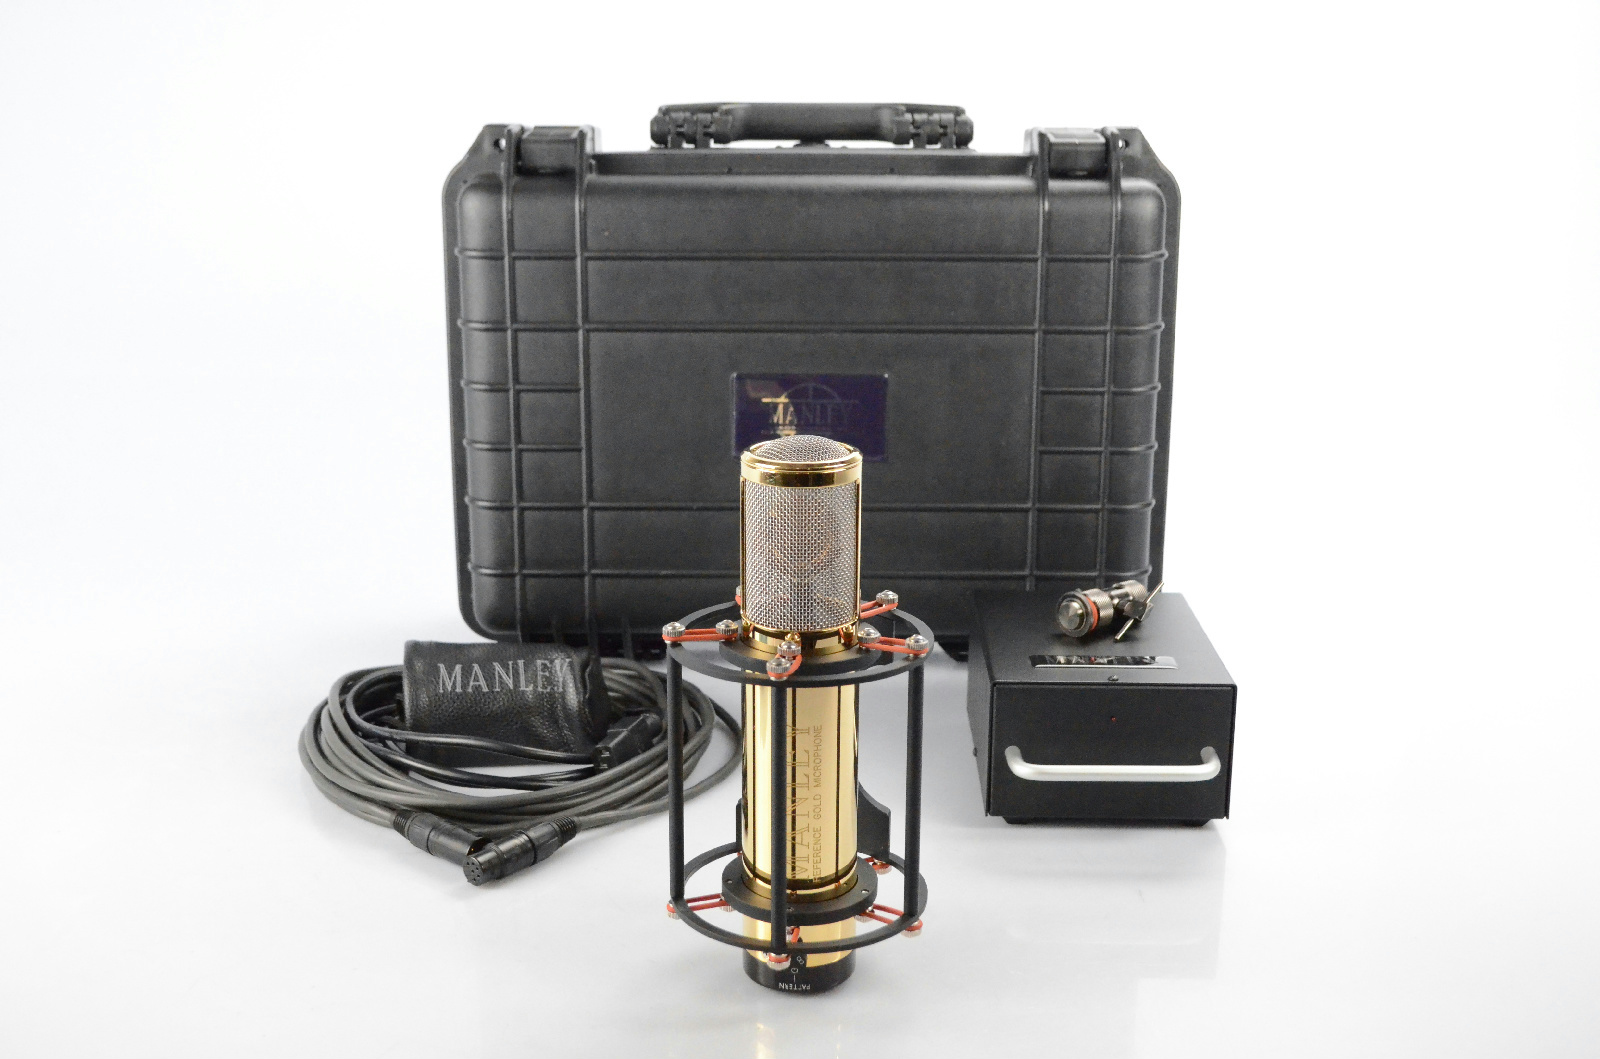 Manley Reference Gold Condenser Microphone w/ Power Supply & Accessories #32706